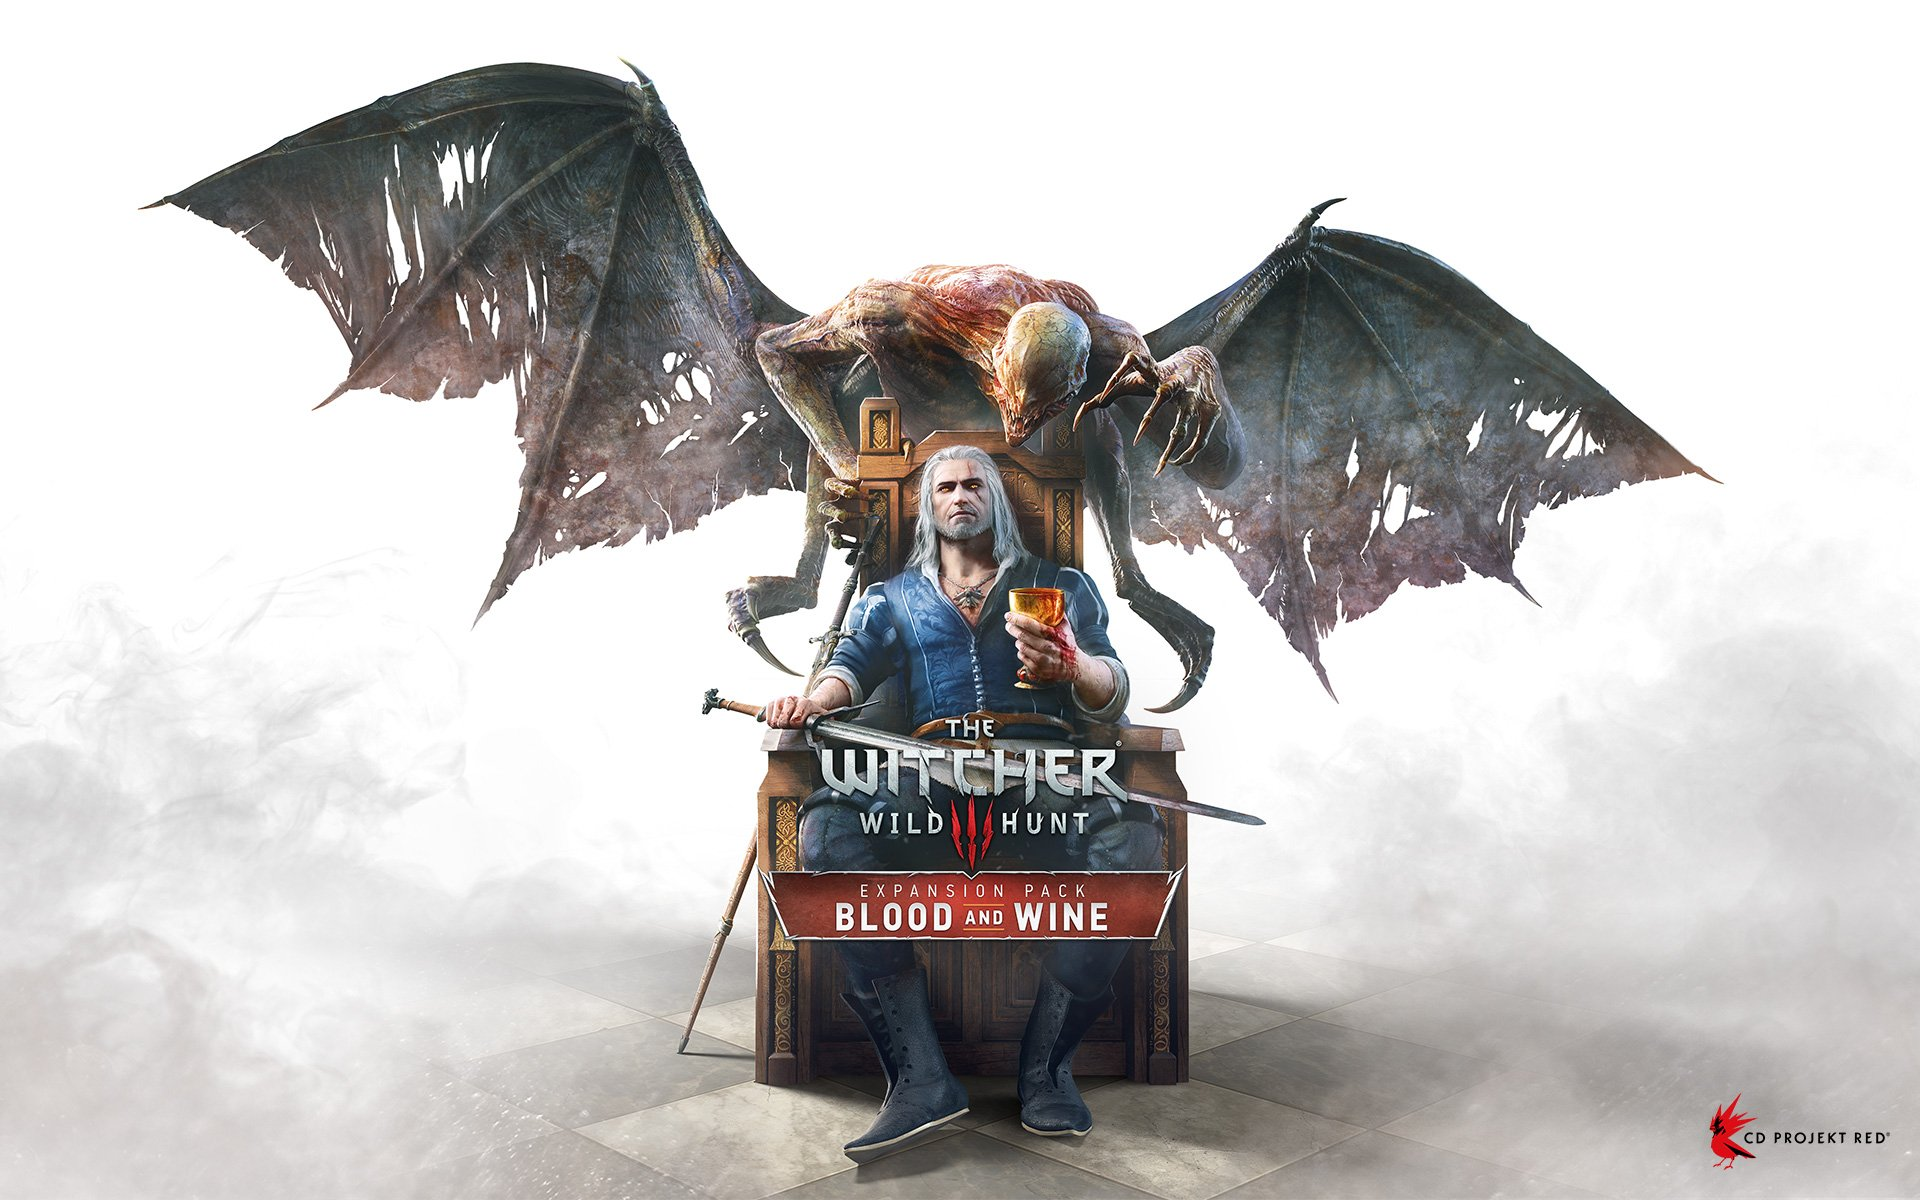 The-Witcher-3-Blood-and-Wine-cover-art